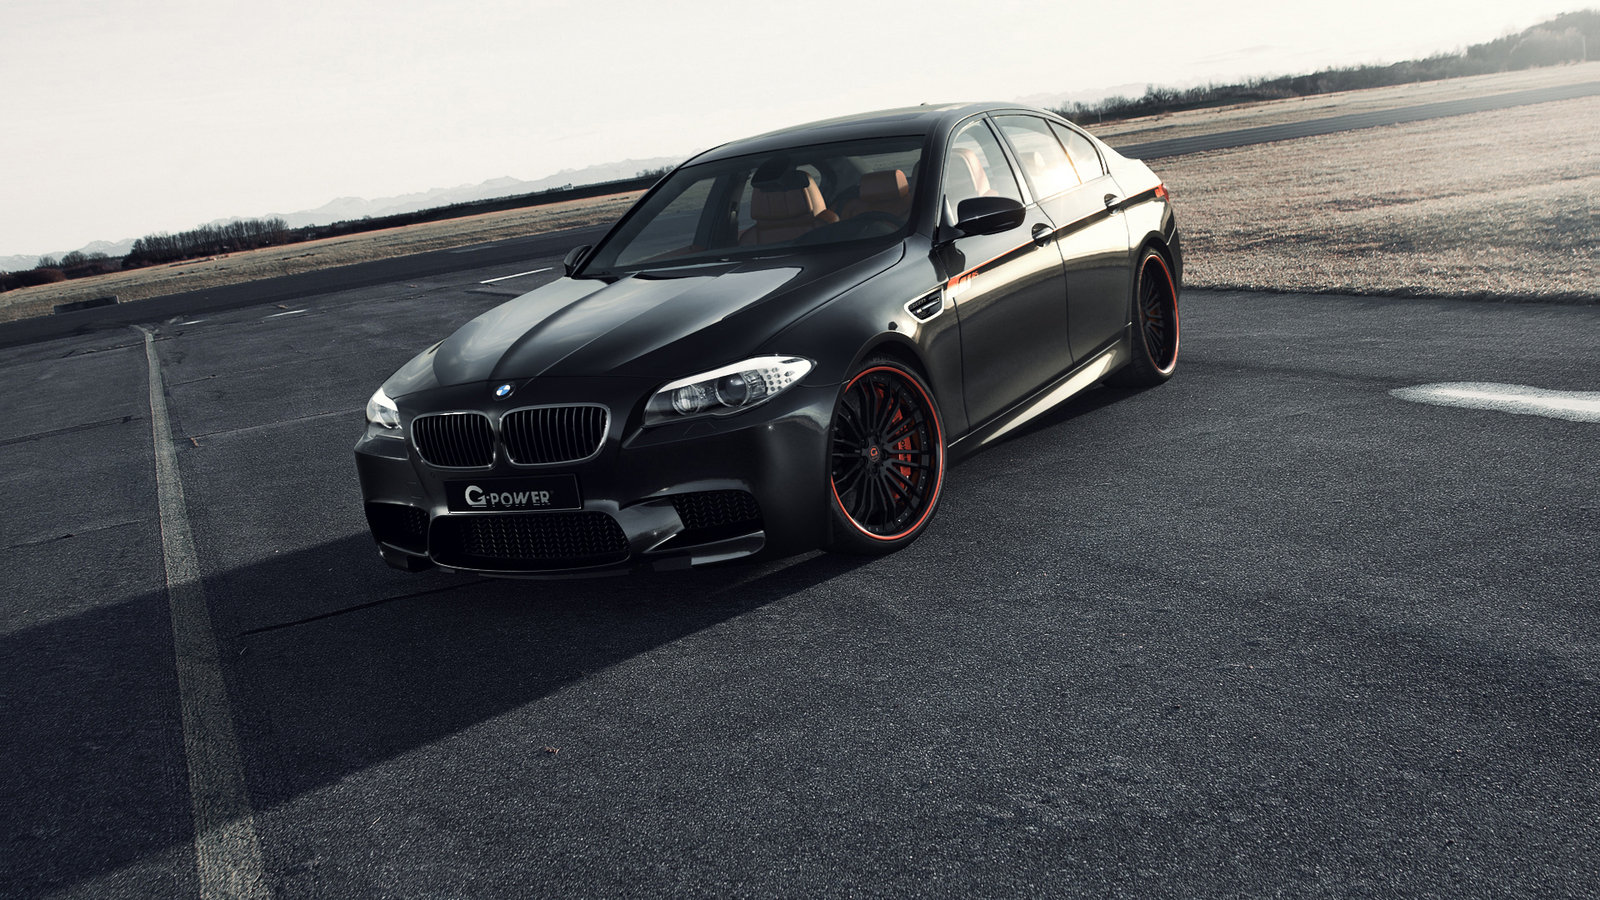 2012 bmw m5 by g power picture 440420 car review top speed. Black Bedroom Furniture Sets. Home Design Ideas